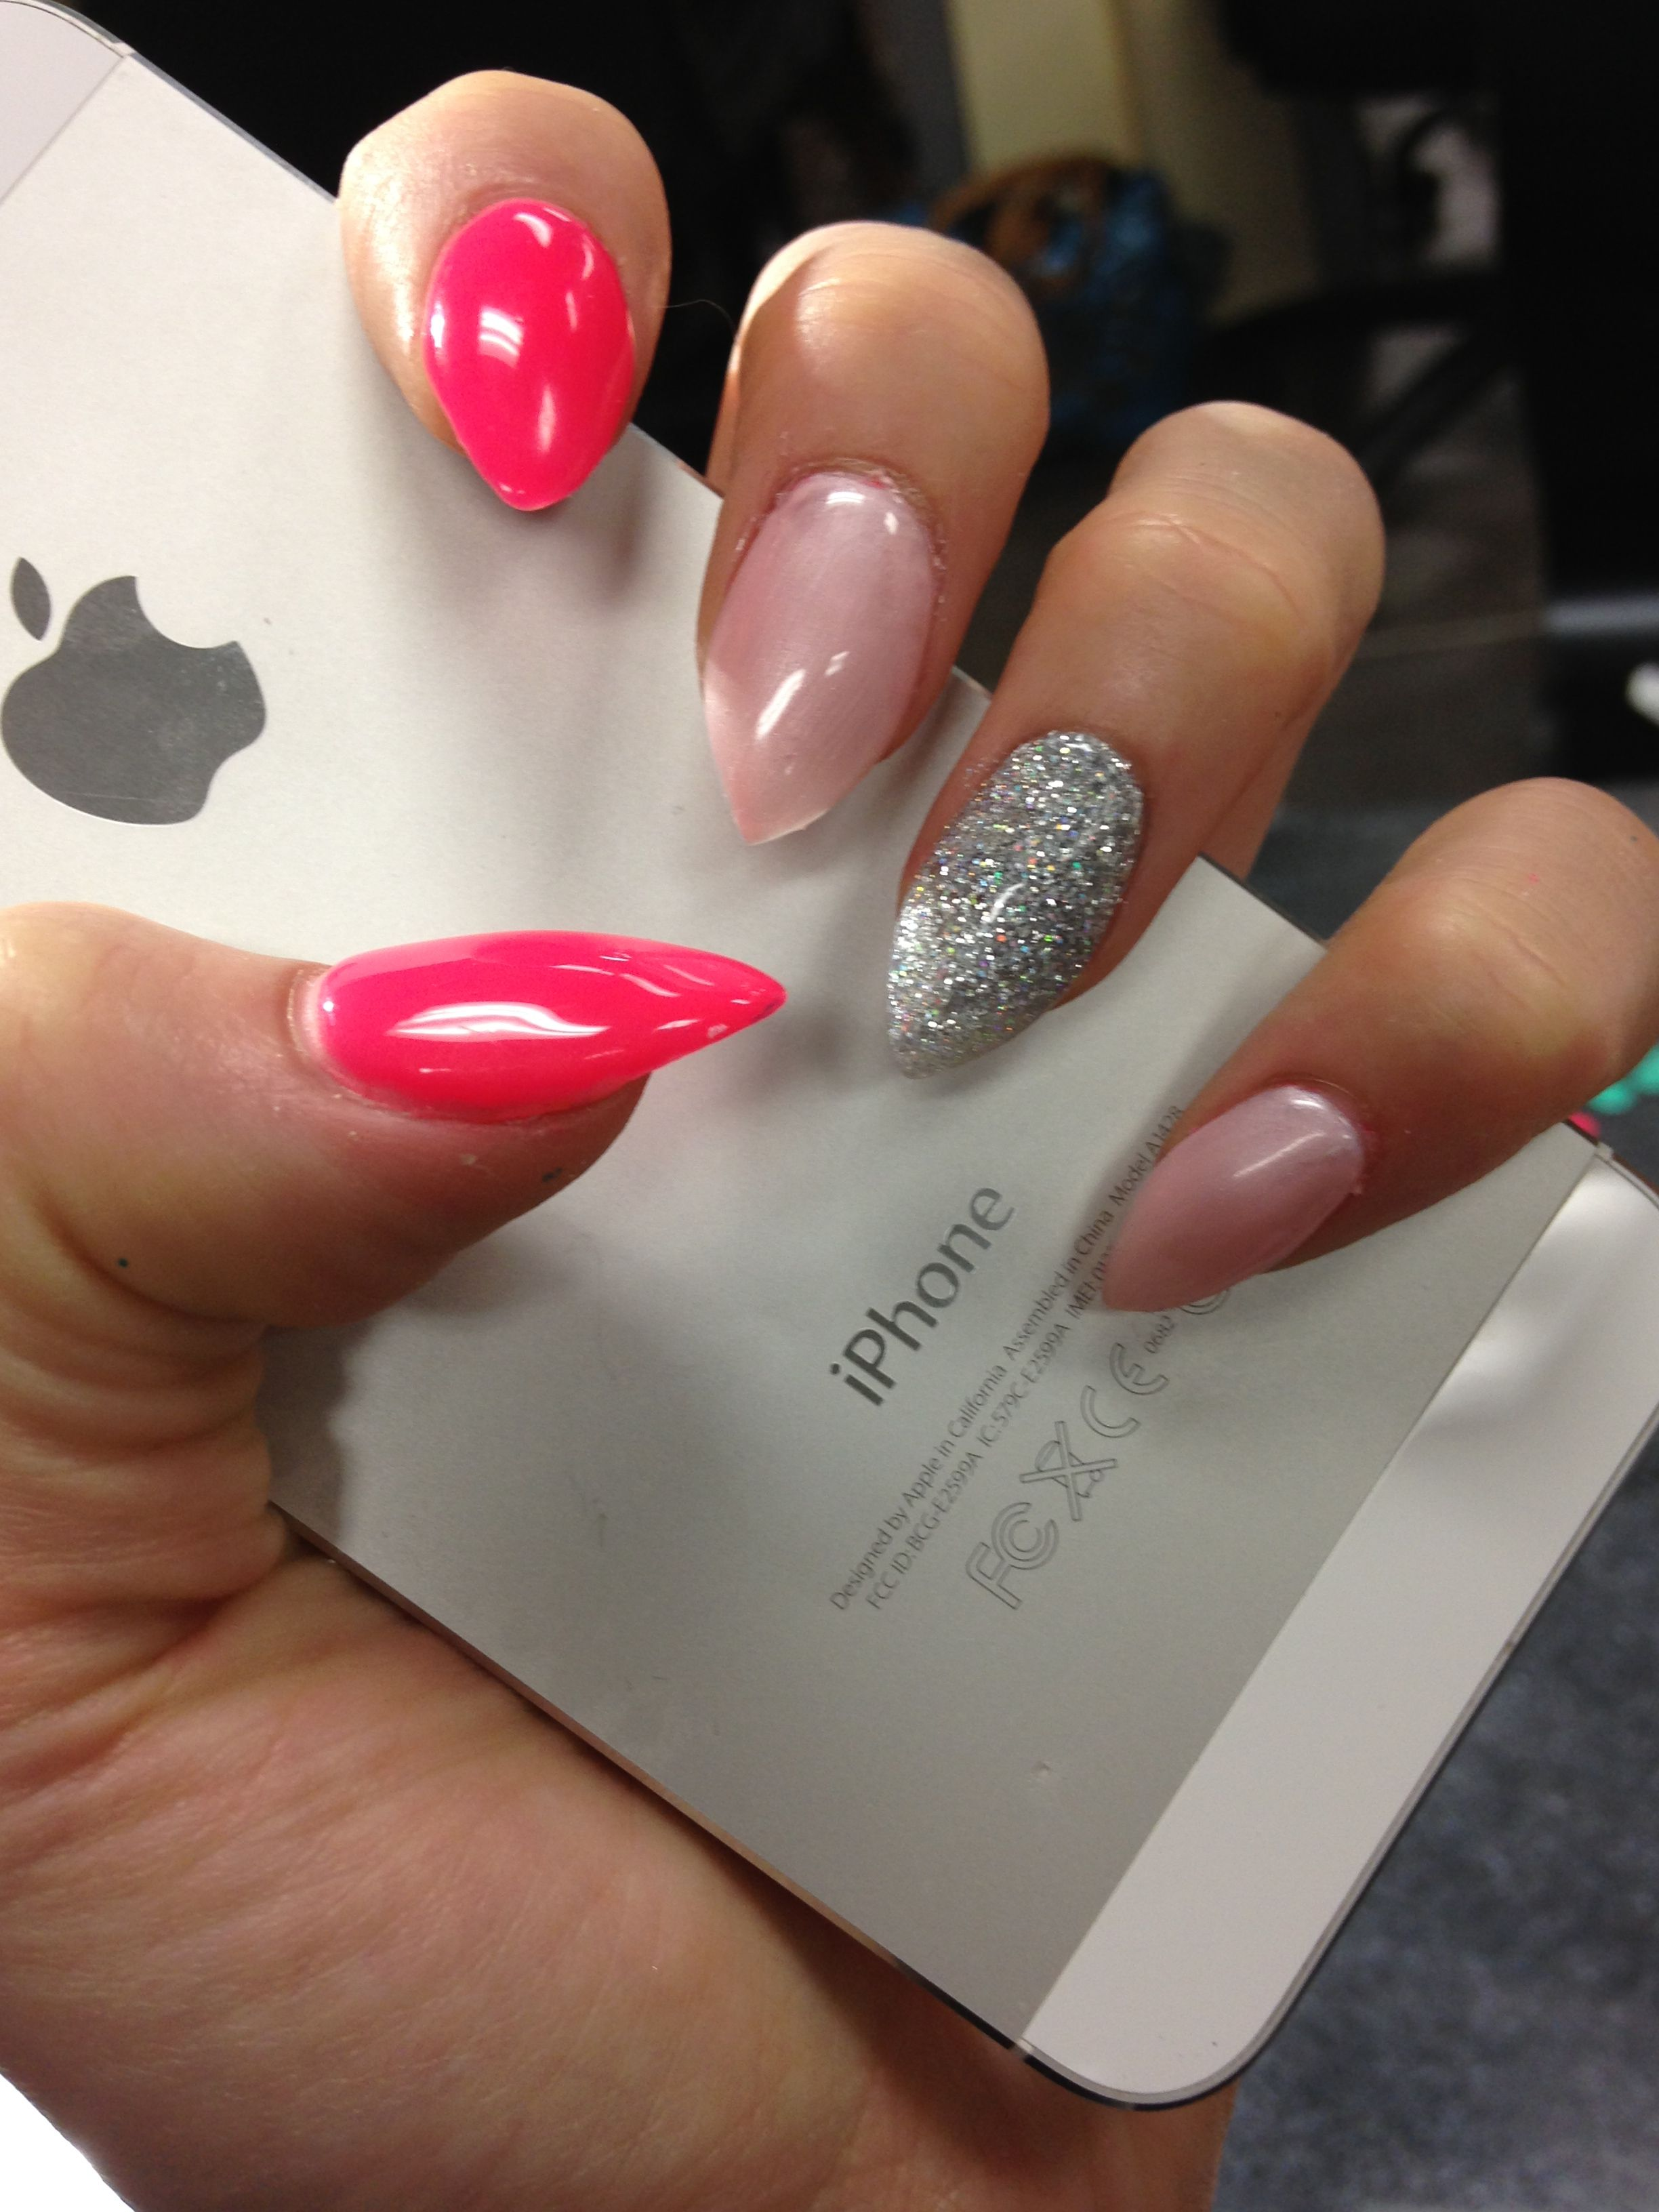 Pin By Kris John On Nail Designs Instagram Nailsbyhenryl Two Color Nails Nail Colors Simple Nails